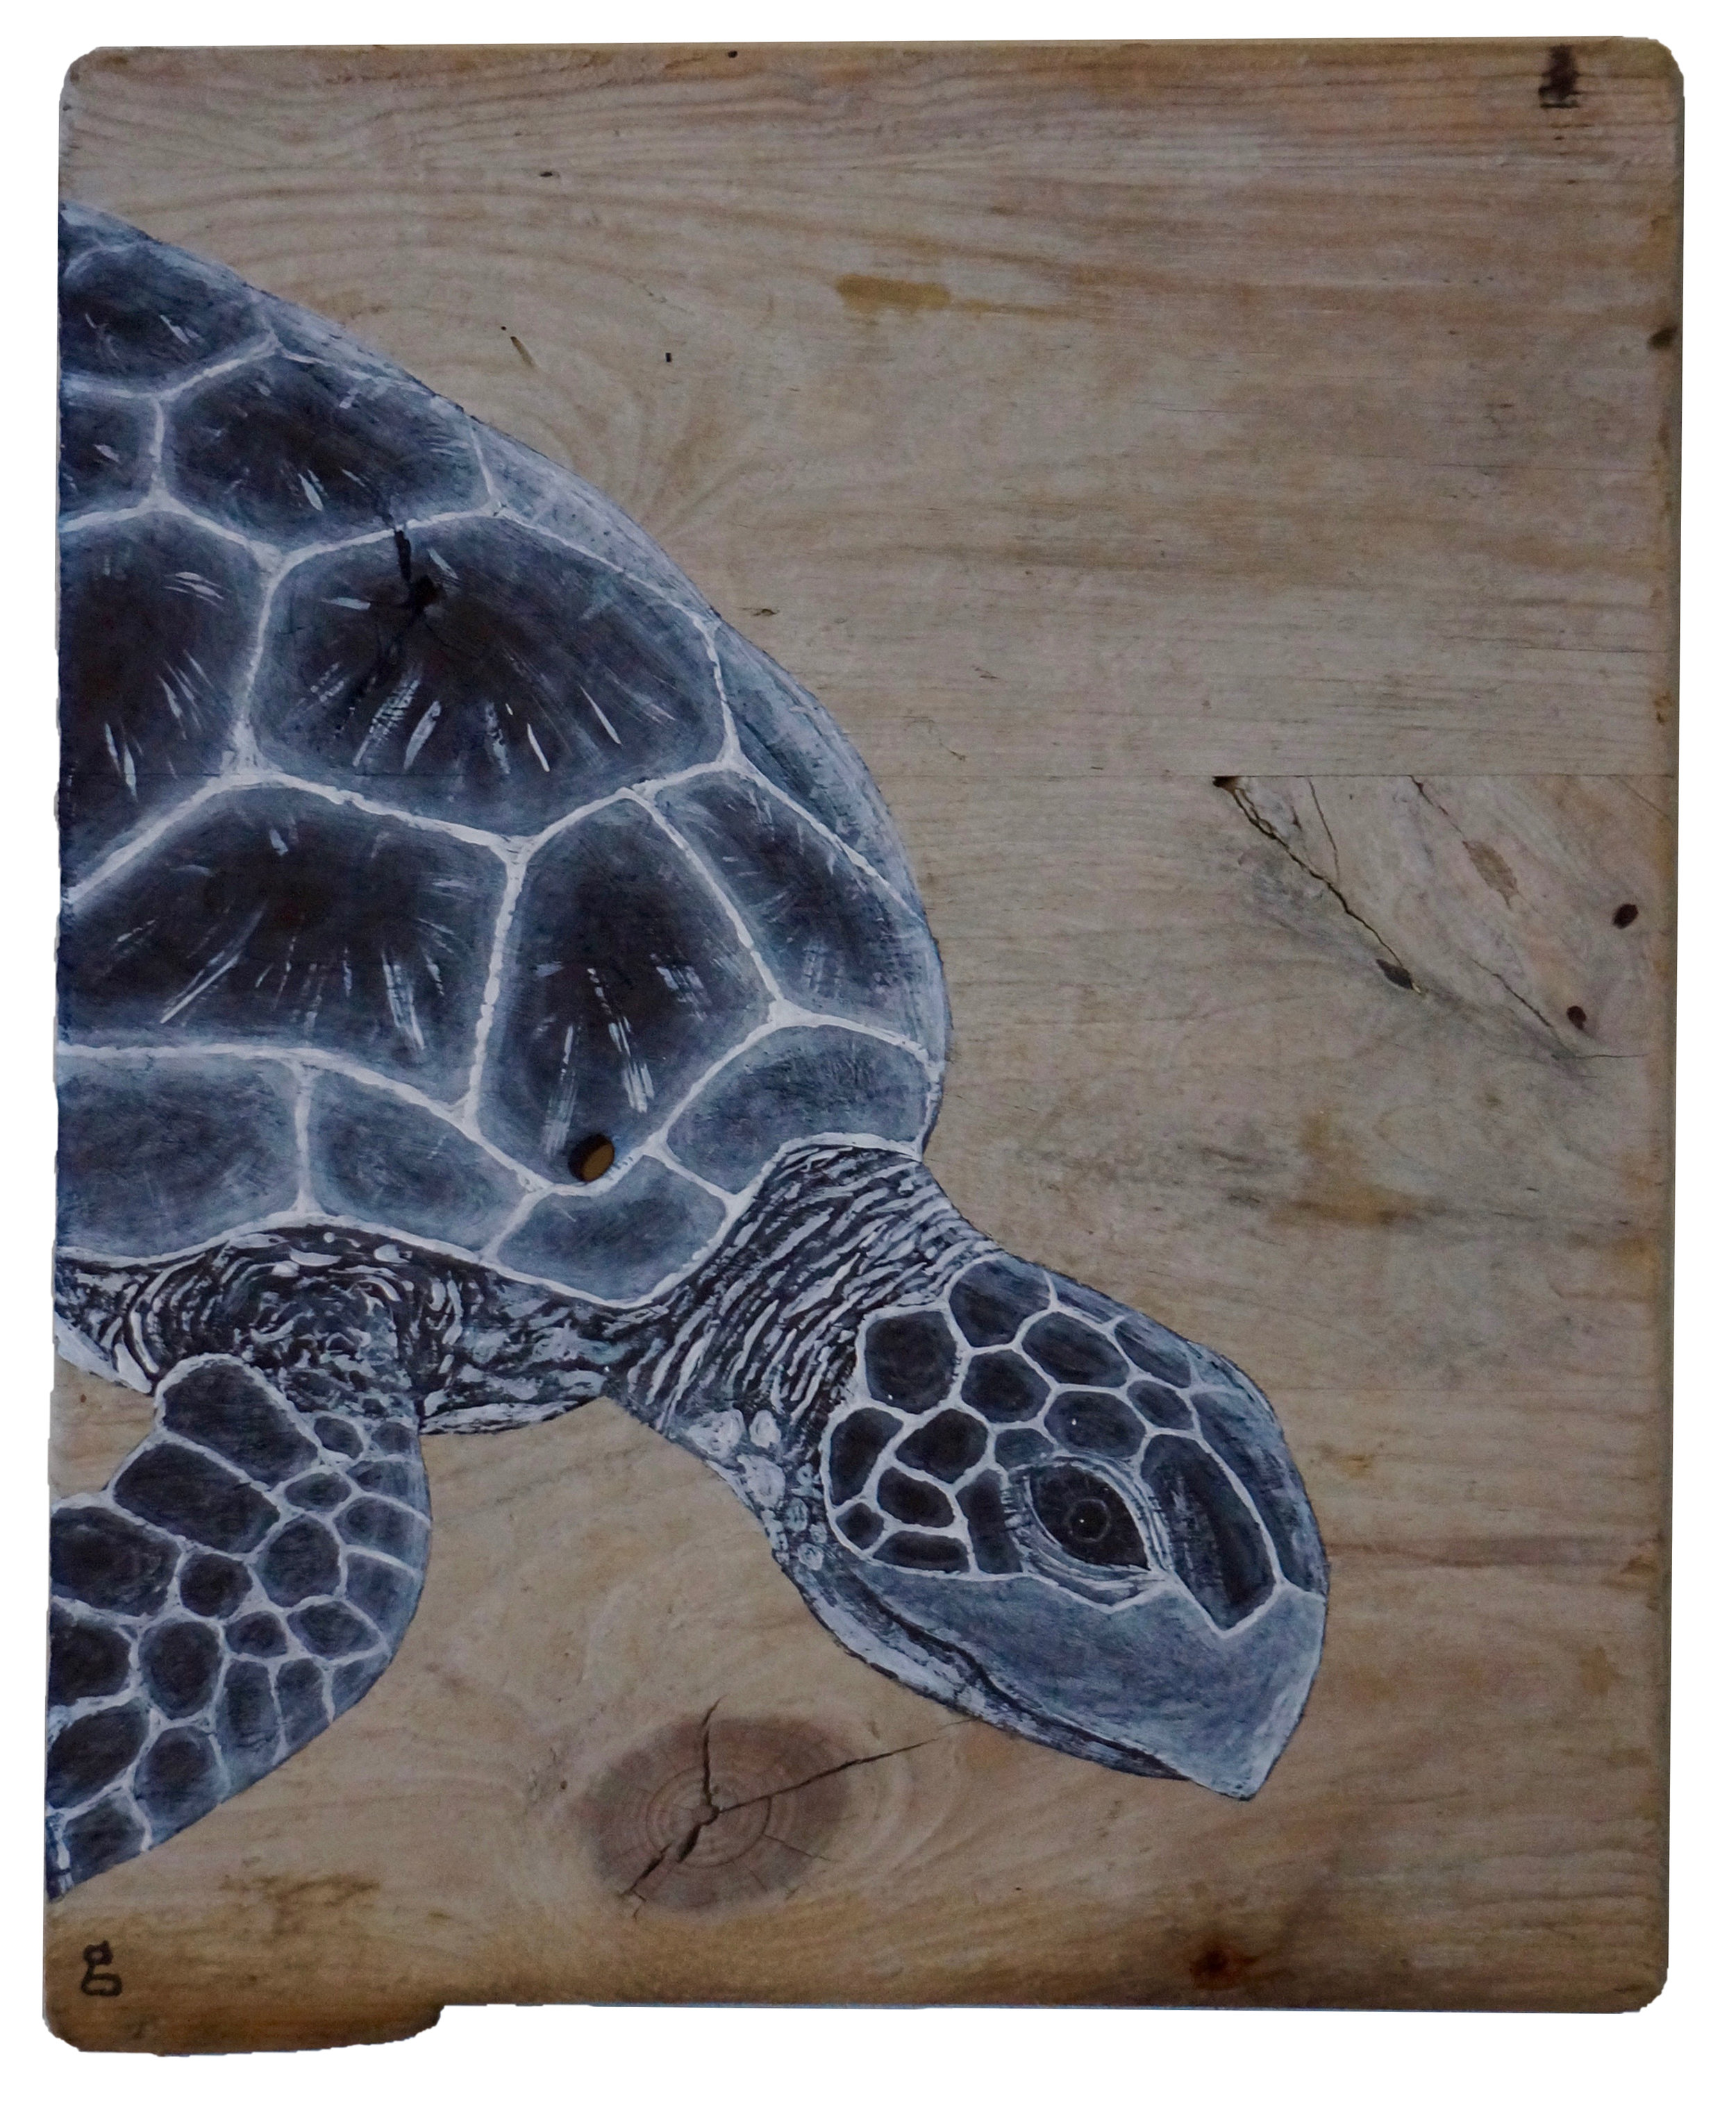 "SEA TURTLE II  2017  ACRYLIC ON FOUND WOOD  14 1/2"" x 12"" x 1/2"""